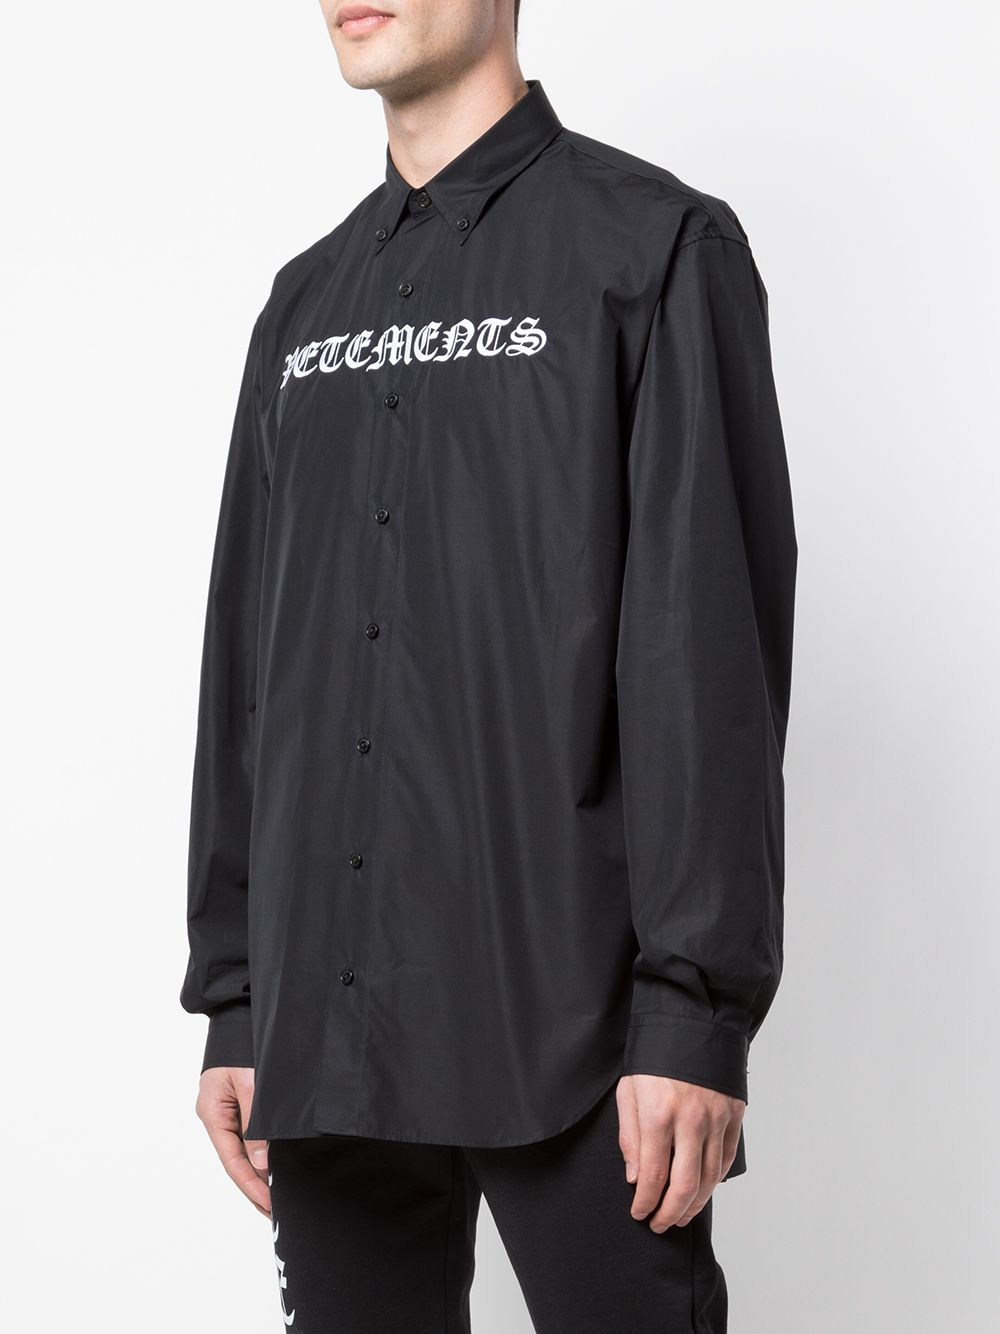 VETEMENTS UNISEX GOTHIC VETEMENTS SHIRT